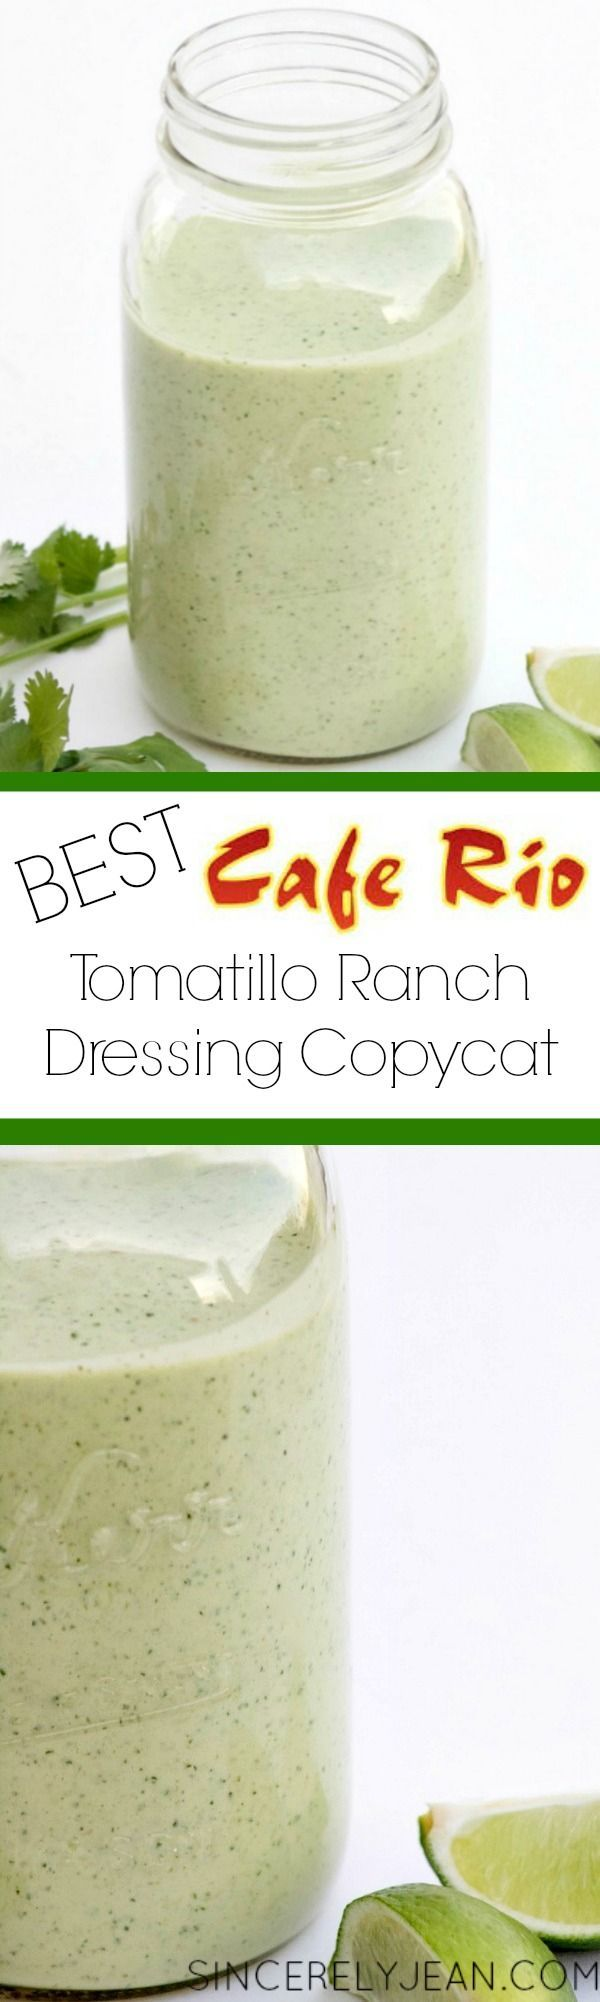 The Best Tomatillo Ranch Dressing Cafe Rio Copycat | http://www.sincerelyjean.com